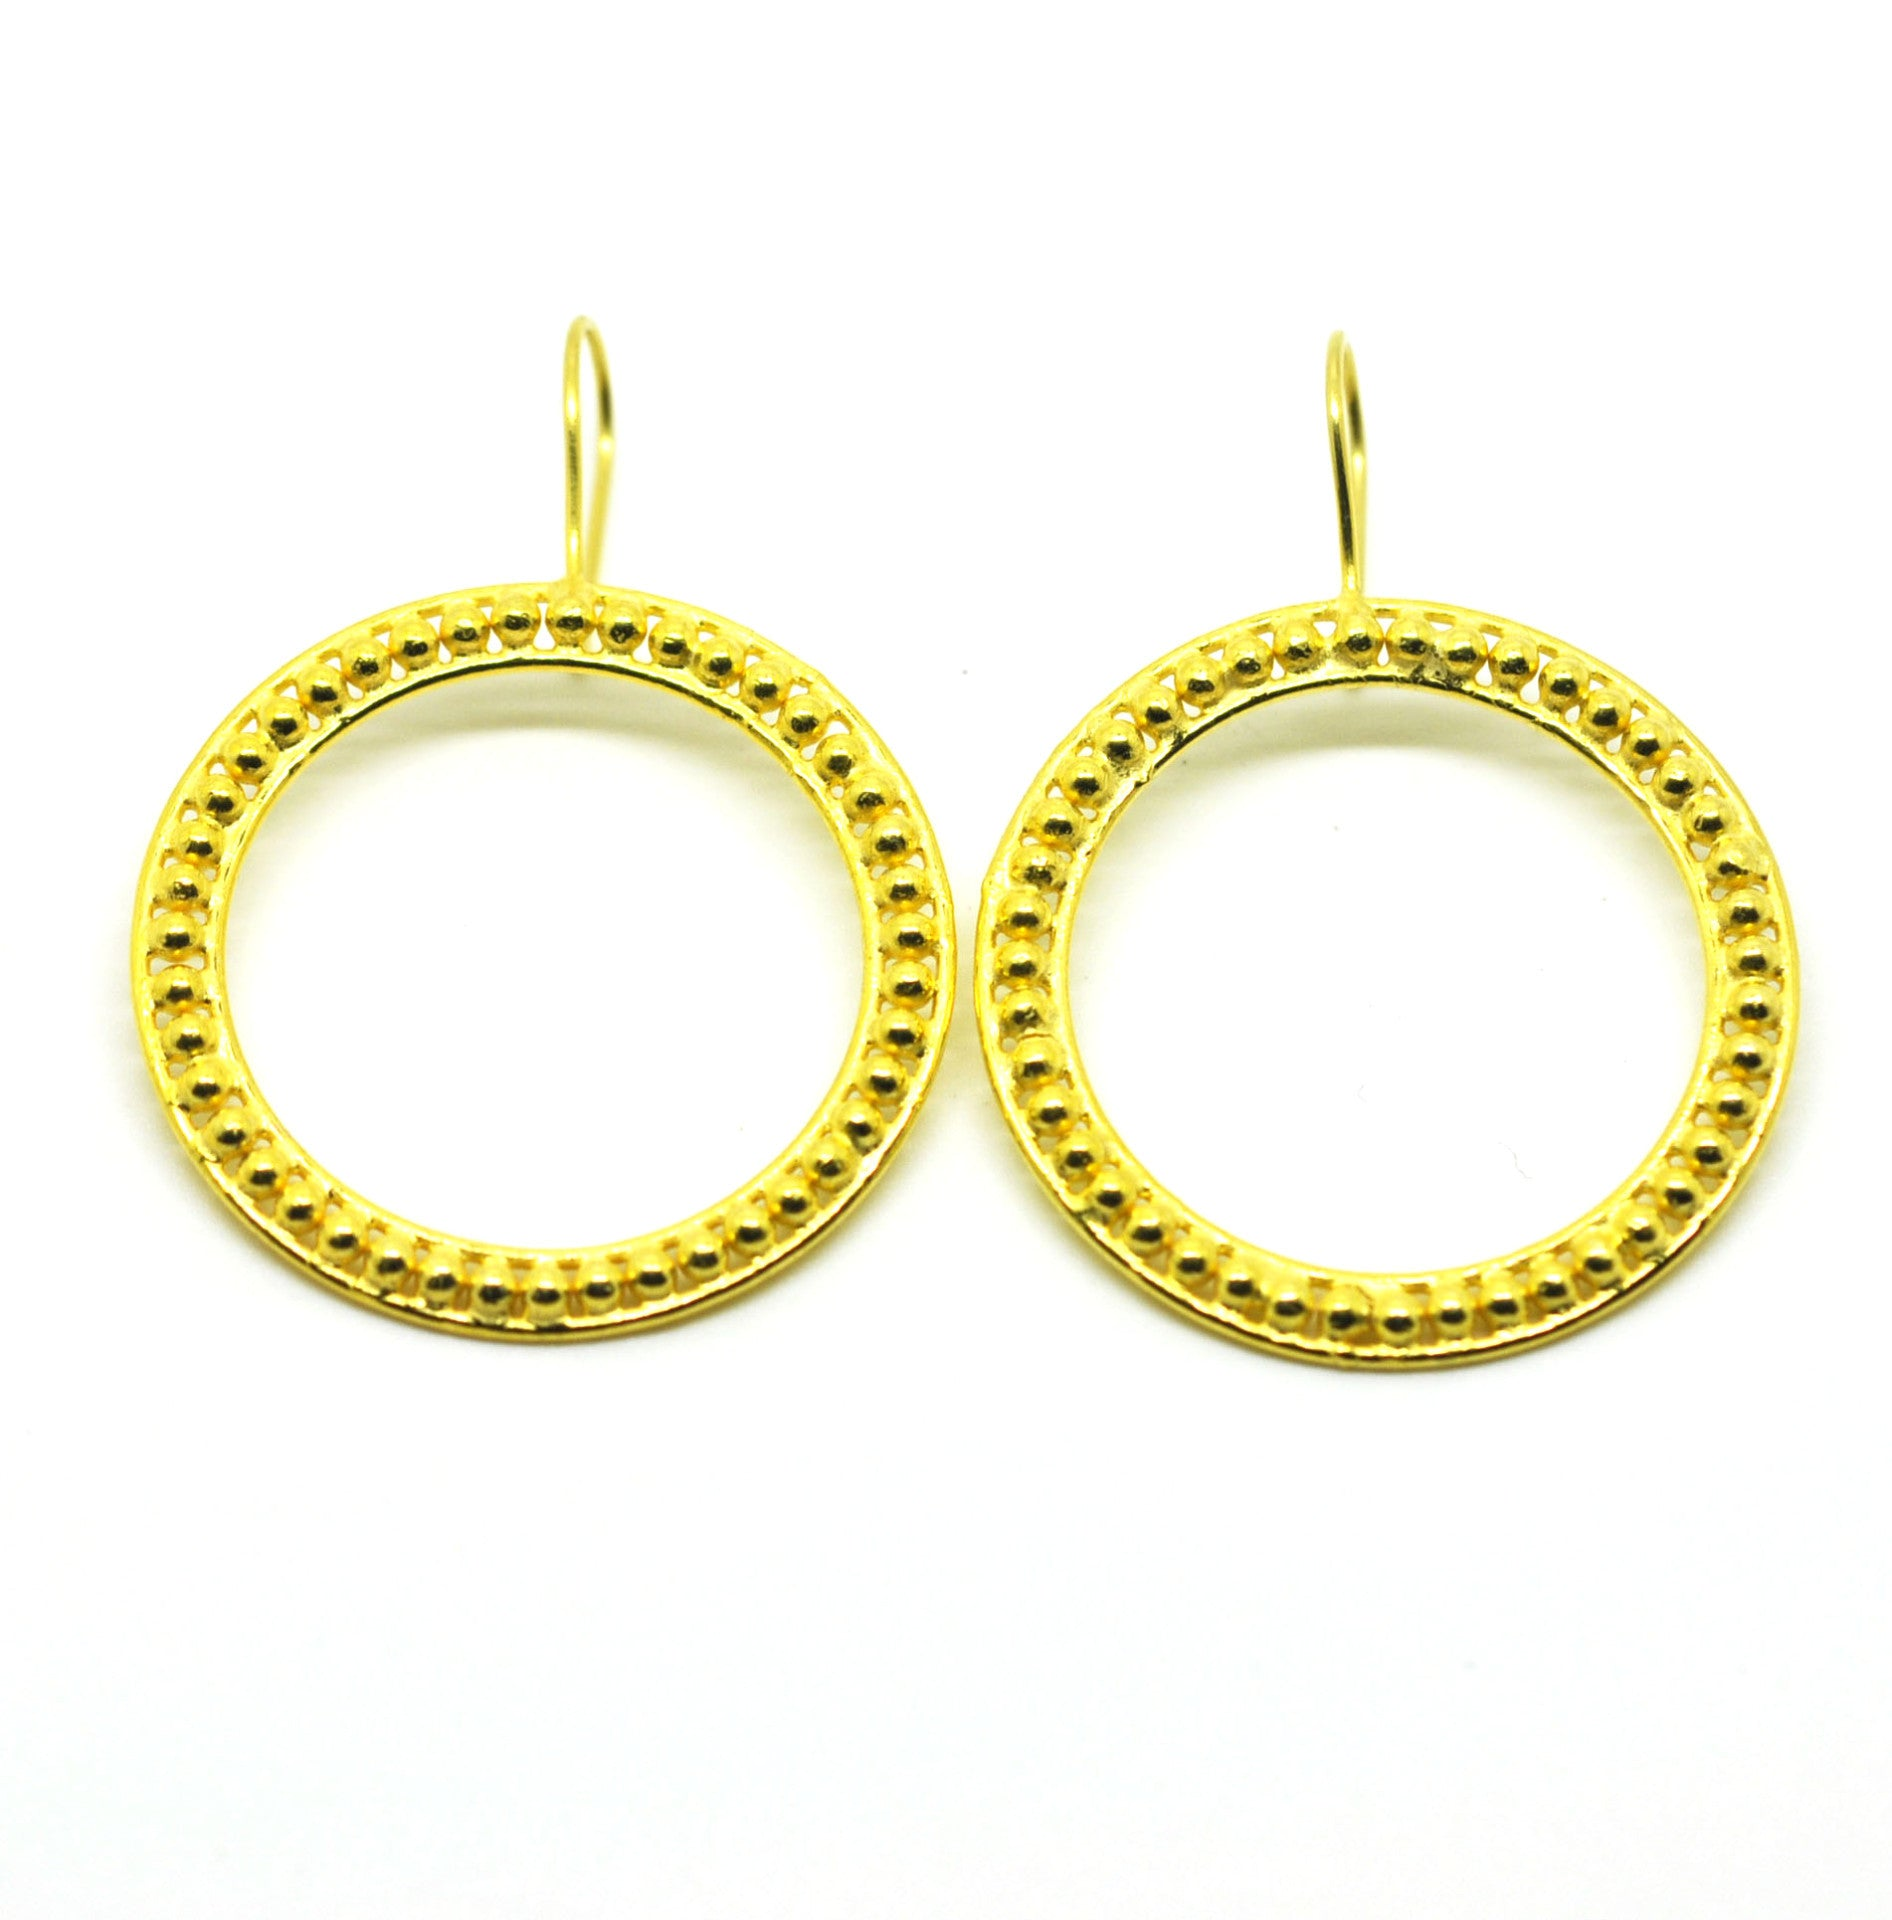 ON SALE Granulation earring (clearance)